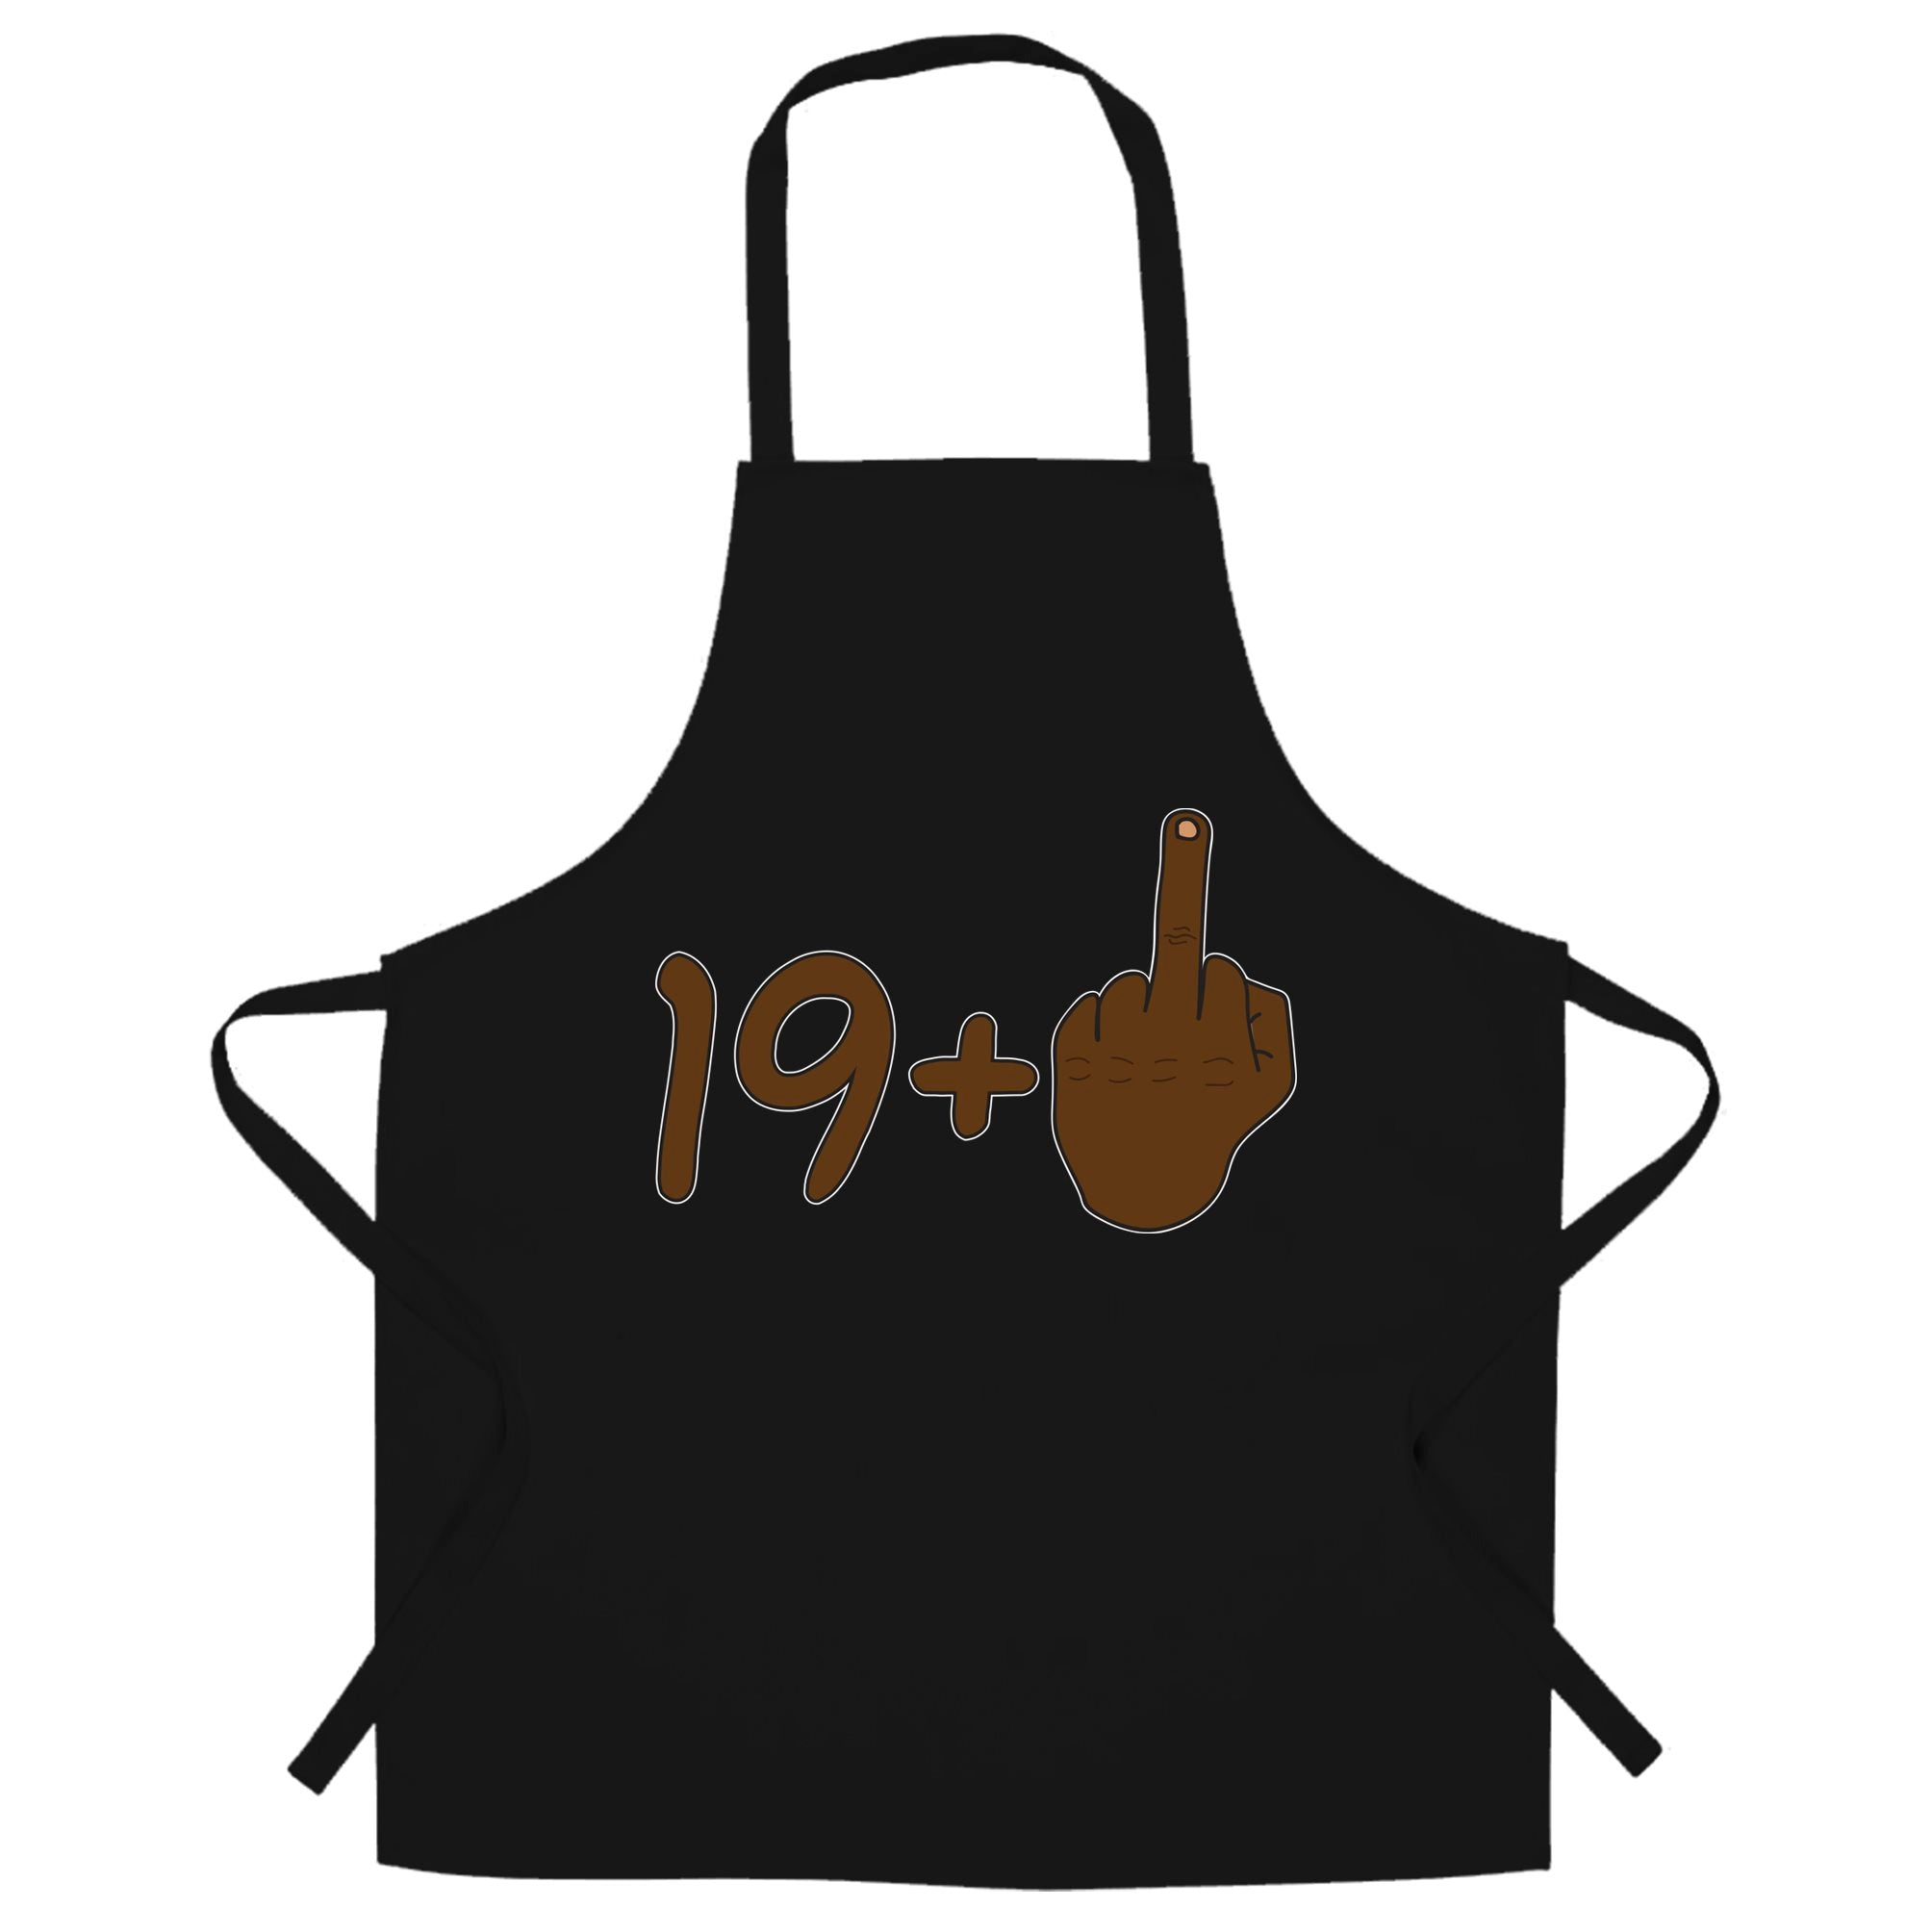 Rude 20th Birthday Chef's Apron Black Middle Finger